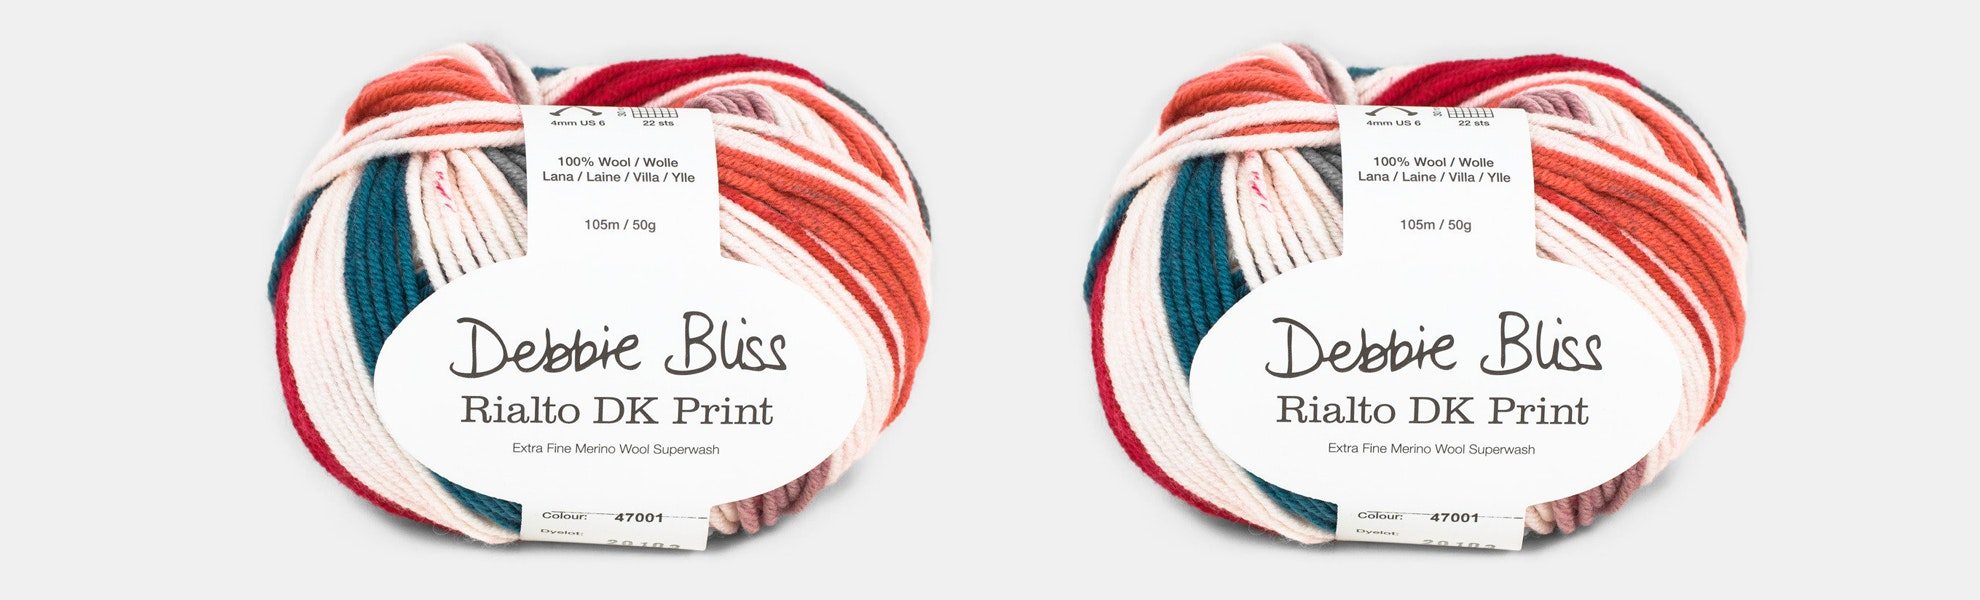 Rialto DK Prints Yarn by Debbie Bliss (2-Pack)